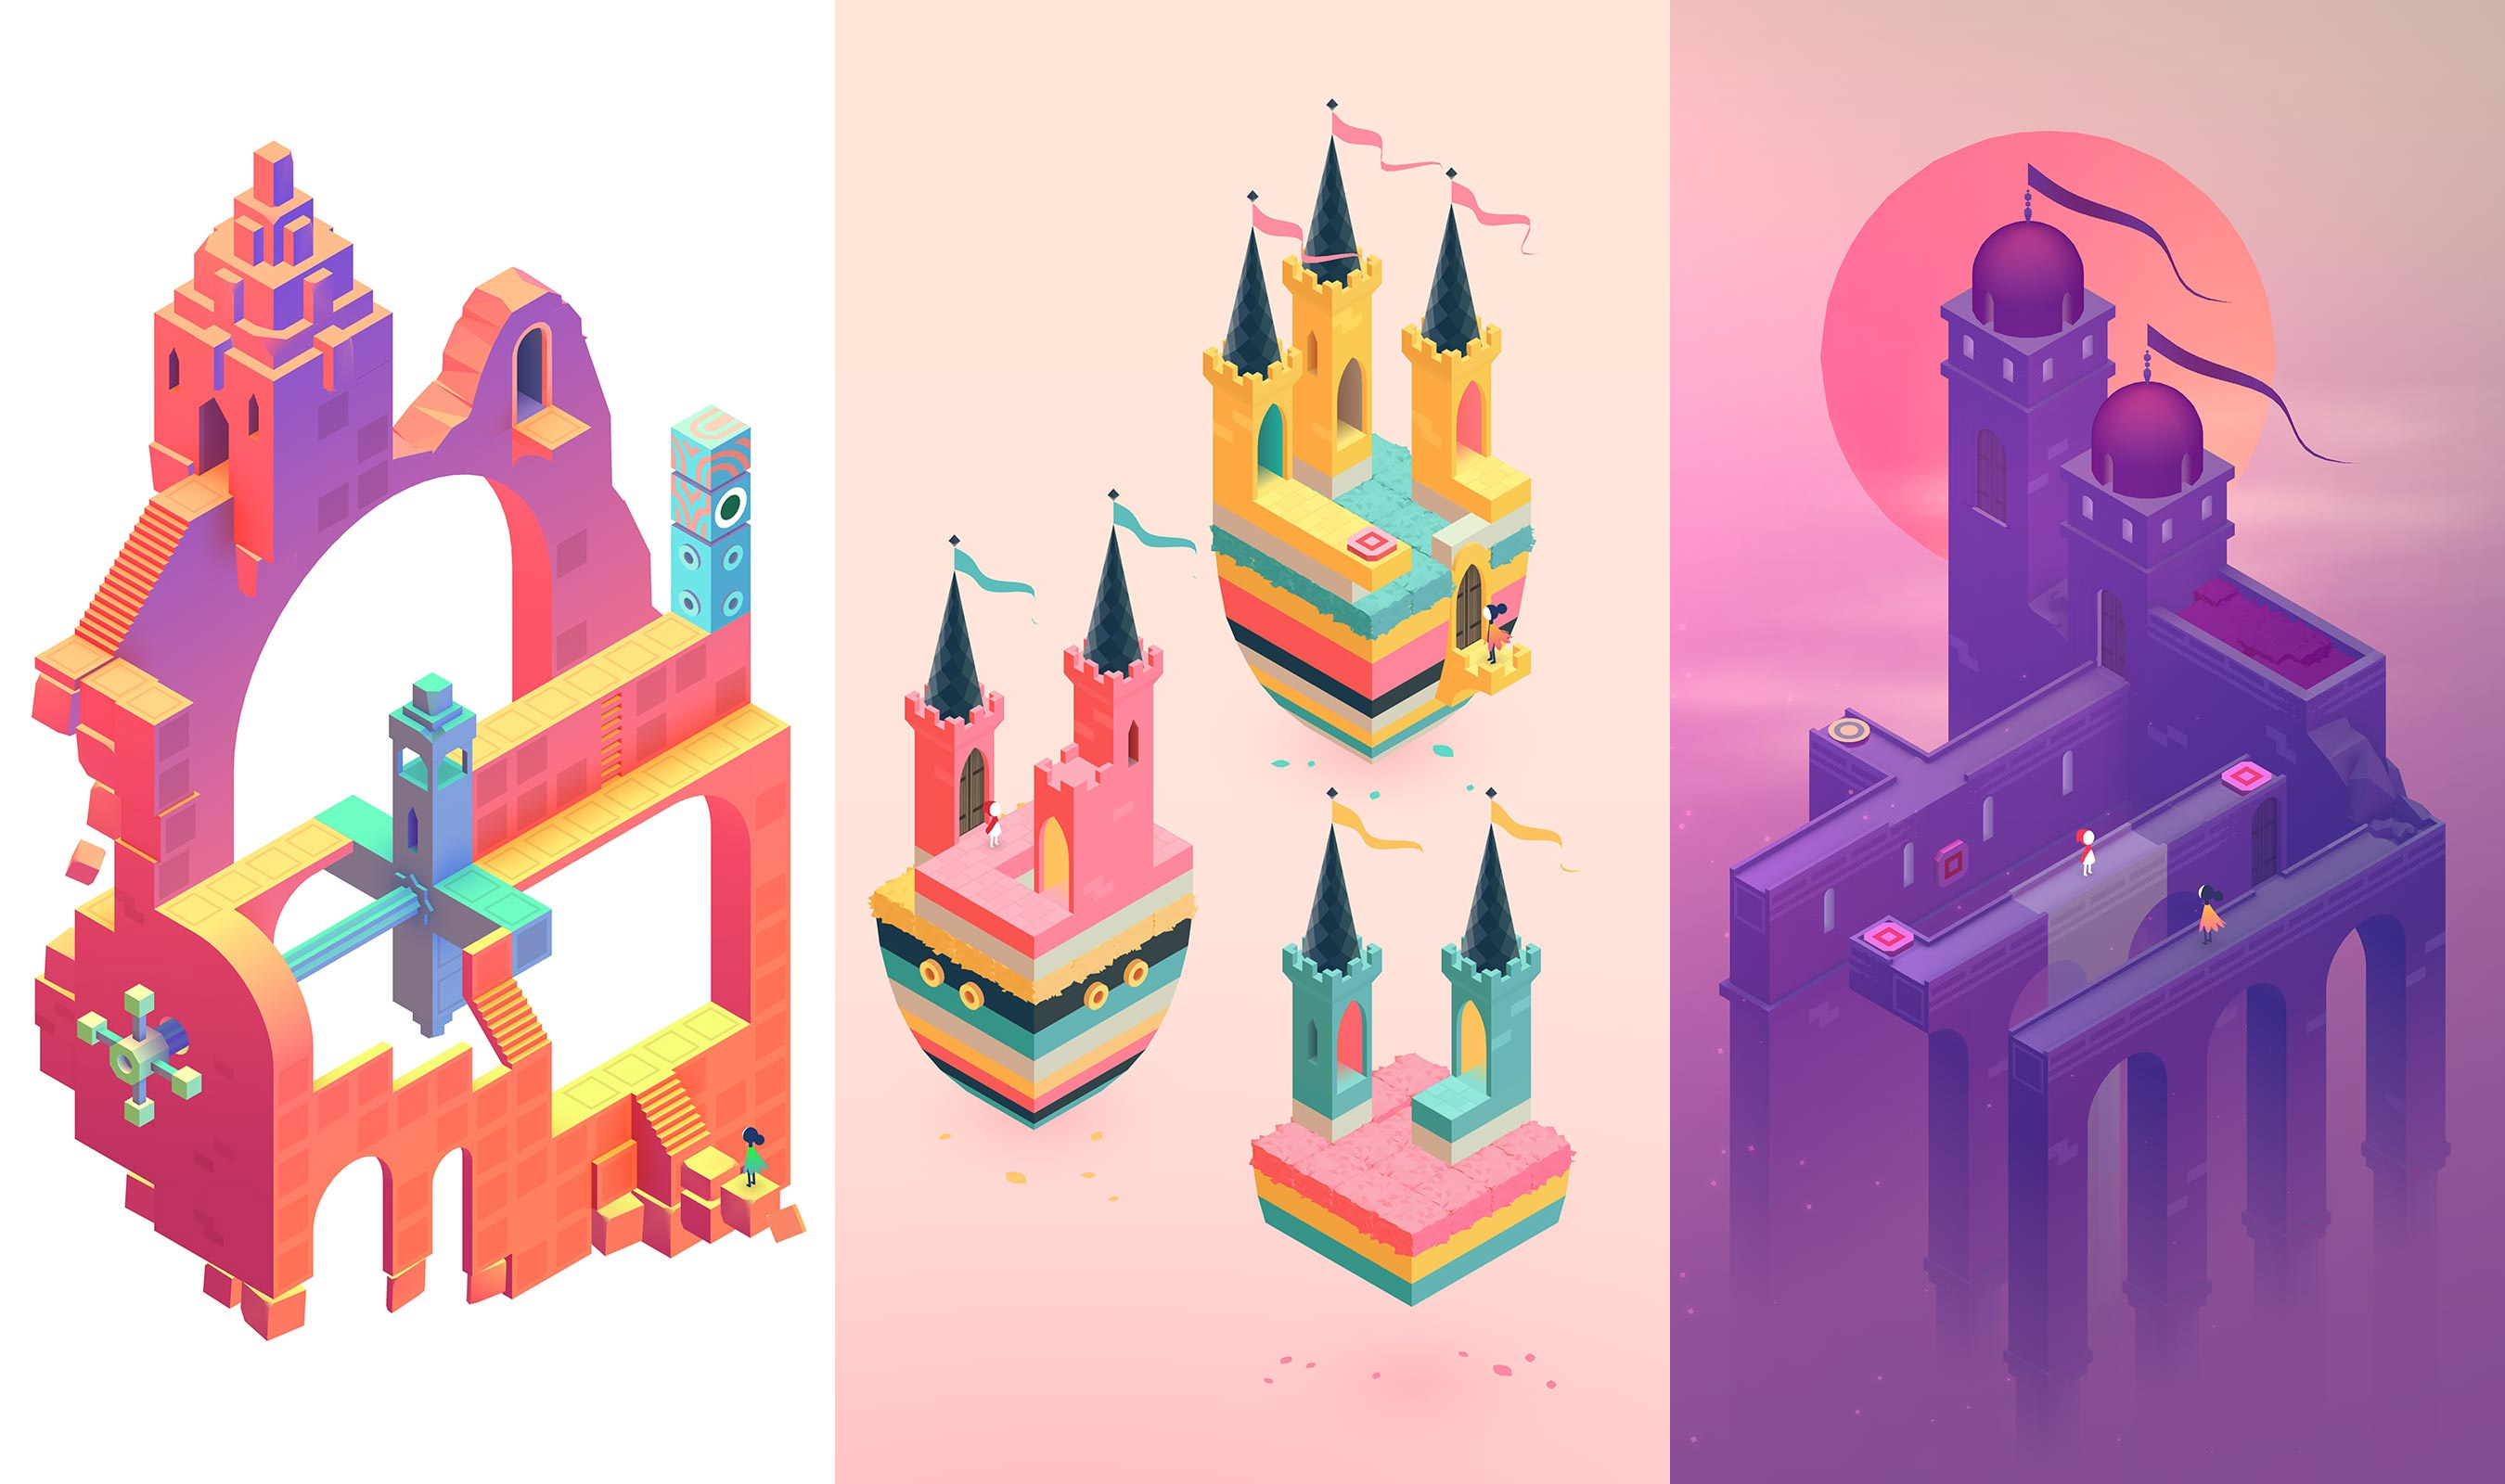 If you're in the mood for a mobile puzzle game, Monument Valley 2 is free screenshot